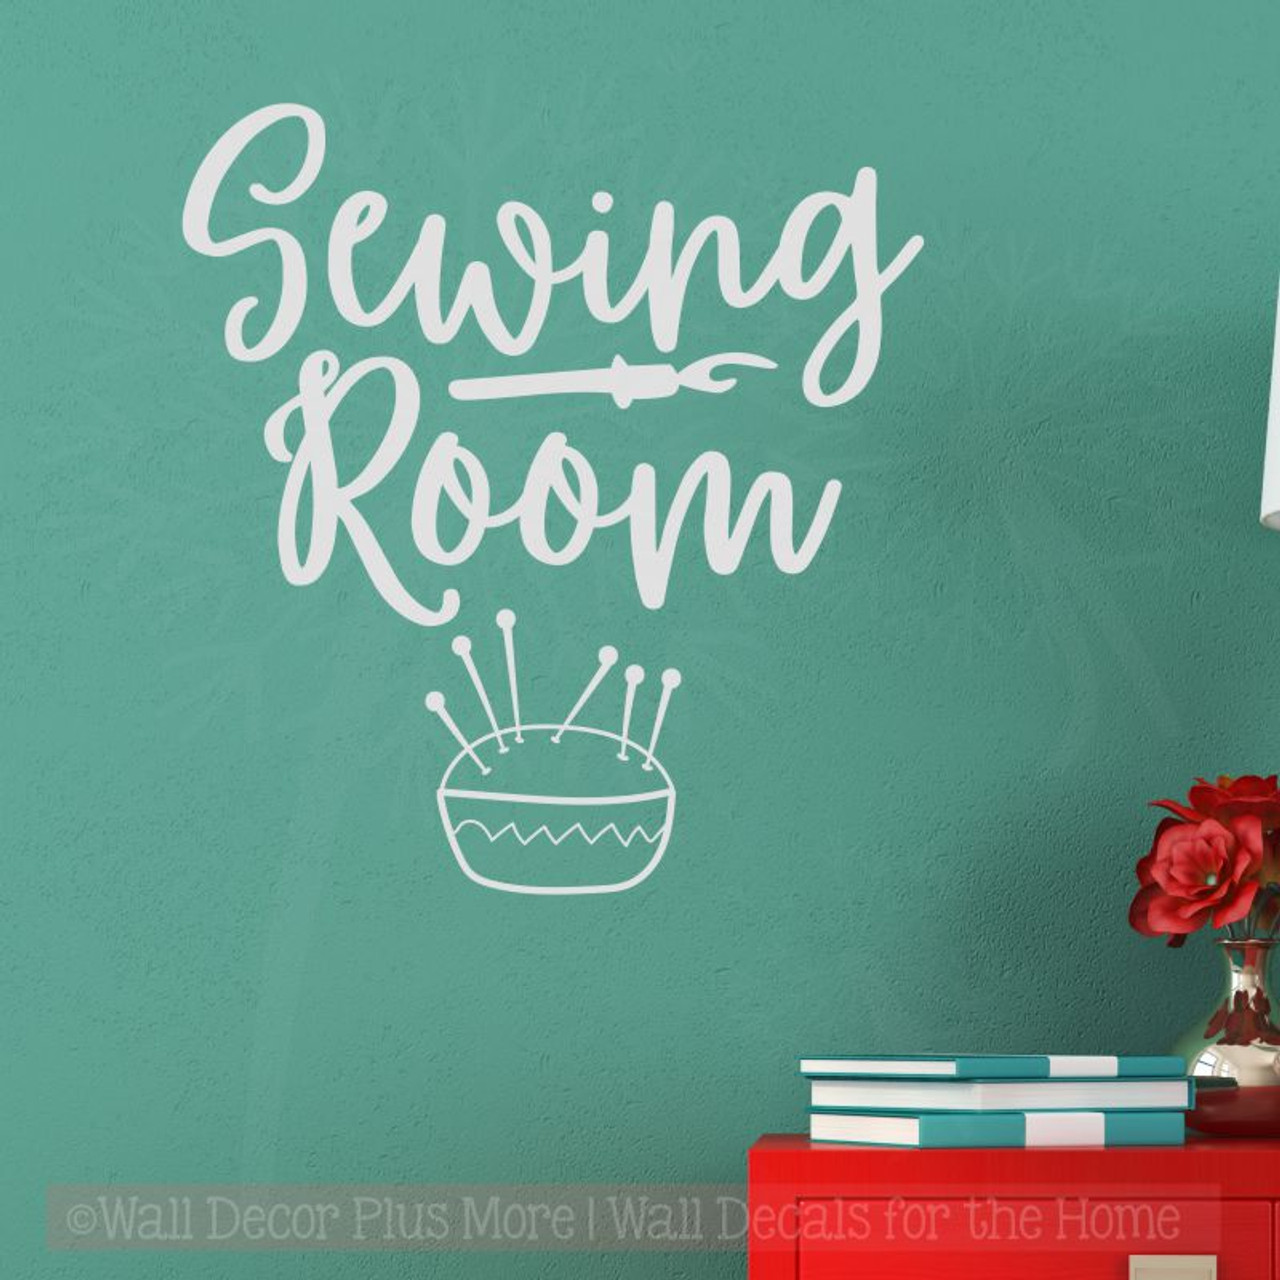 sewing room wall decals vinyl lettering stickers craft room decor